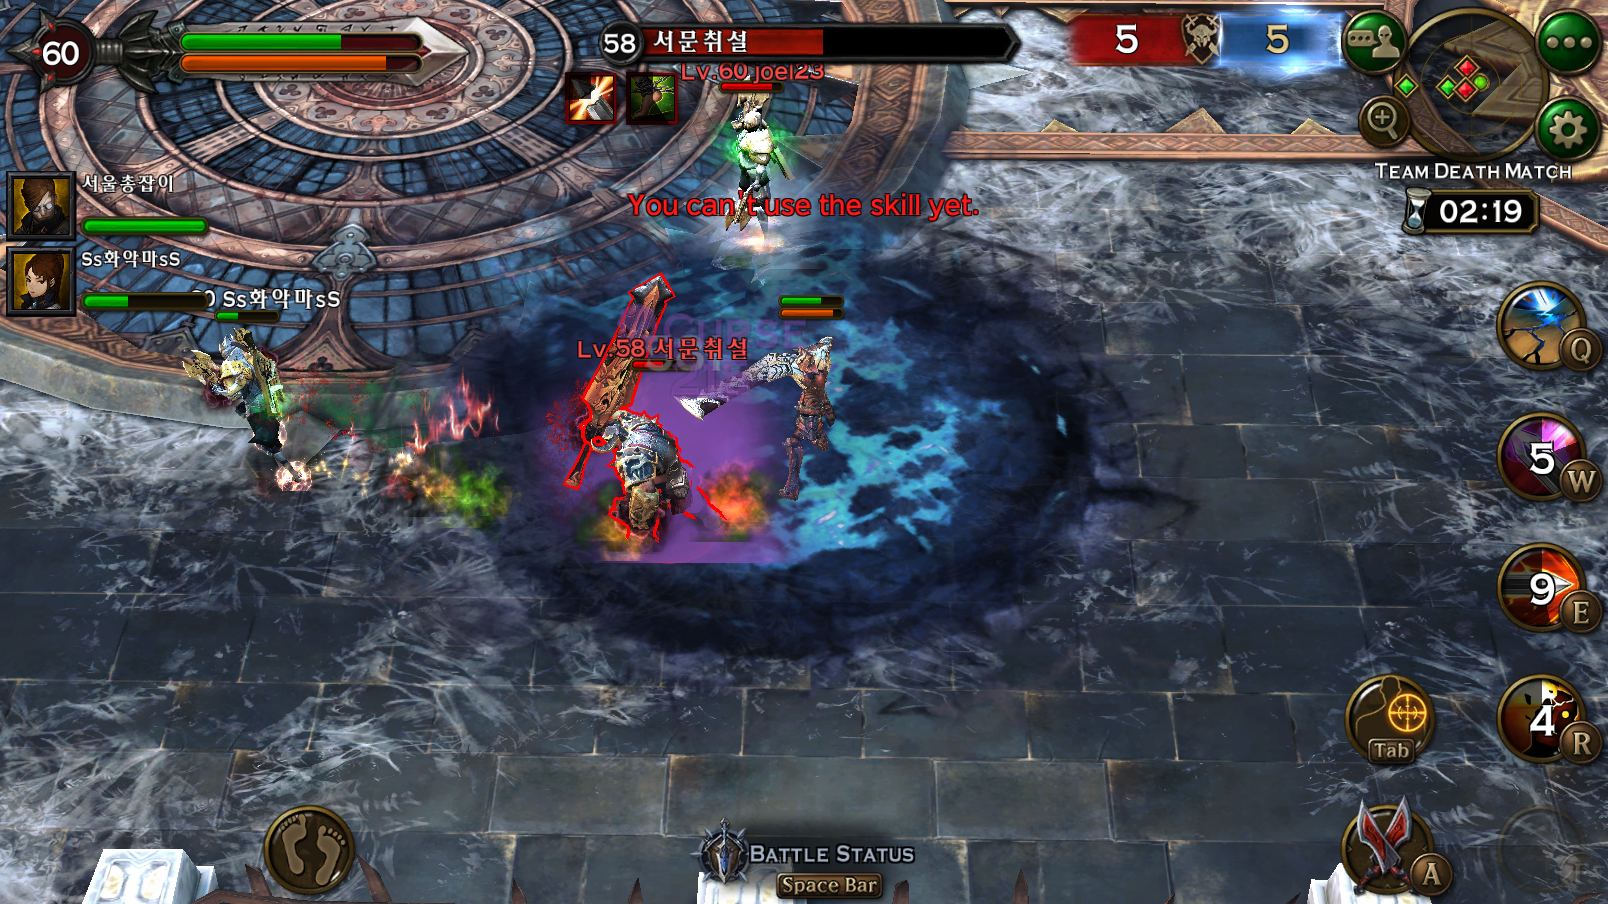 Angel Stone has received a massive 2.0 update which includes extensive updates to PvP